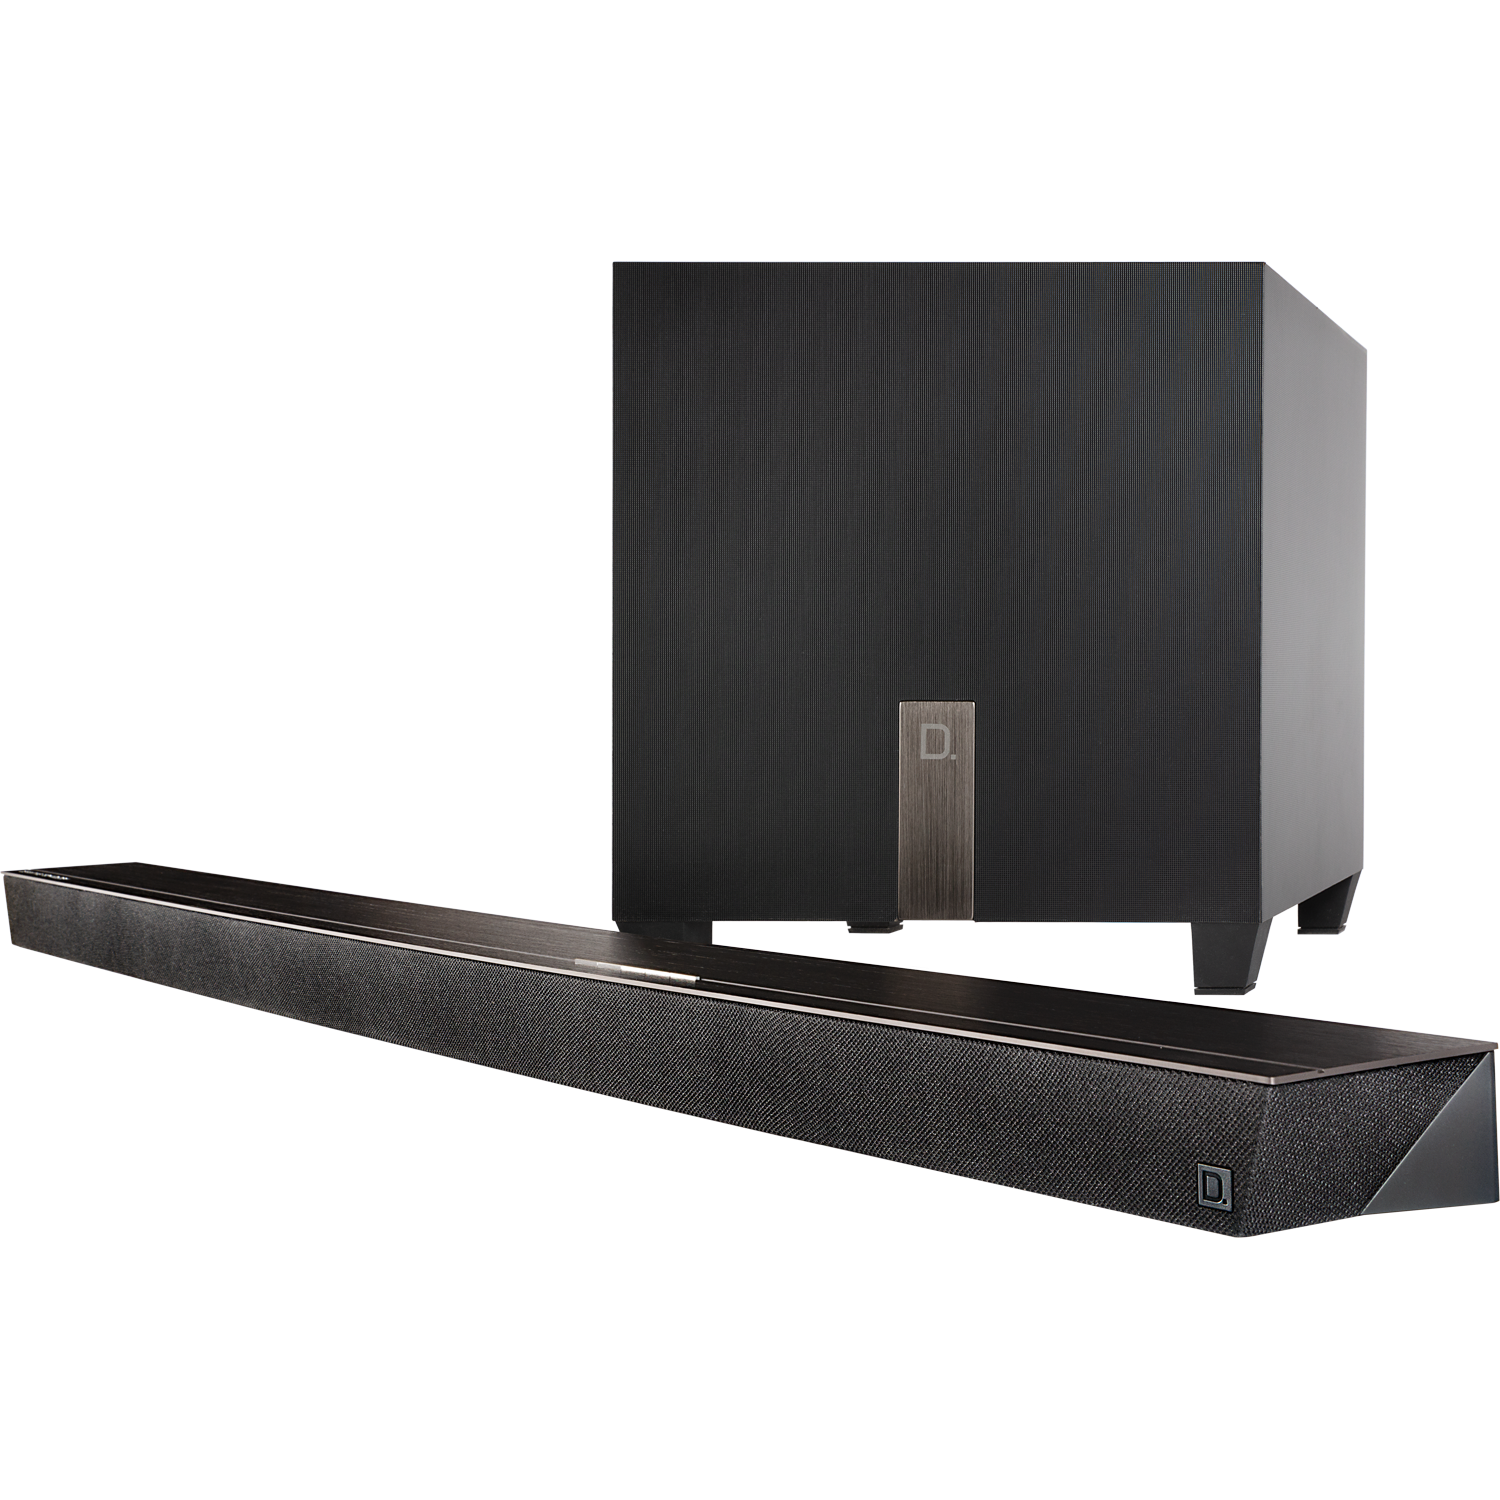 DEFINITIVE TECHNOLOGY Studio Slim 3.1 Soundbar w/Wireless Subwoofer Chromecast Built-in